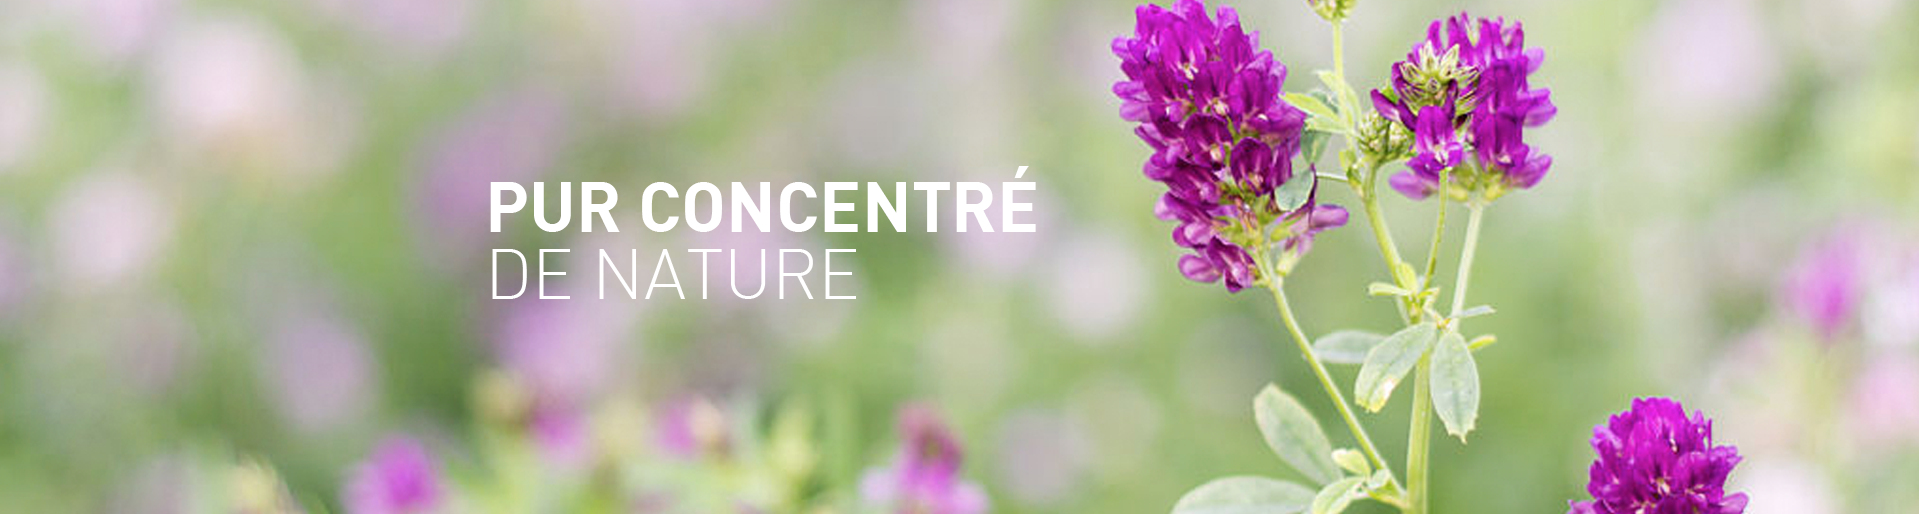 pur_concentre_nature